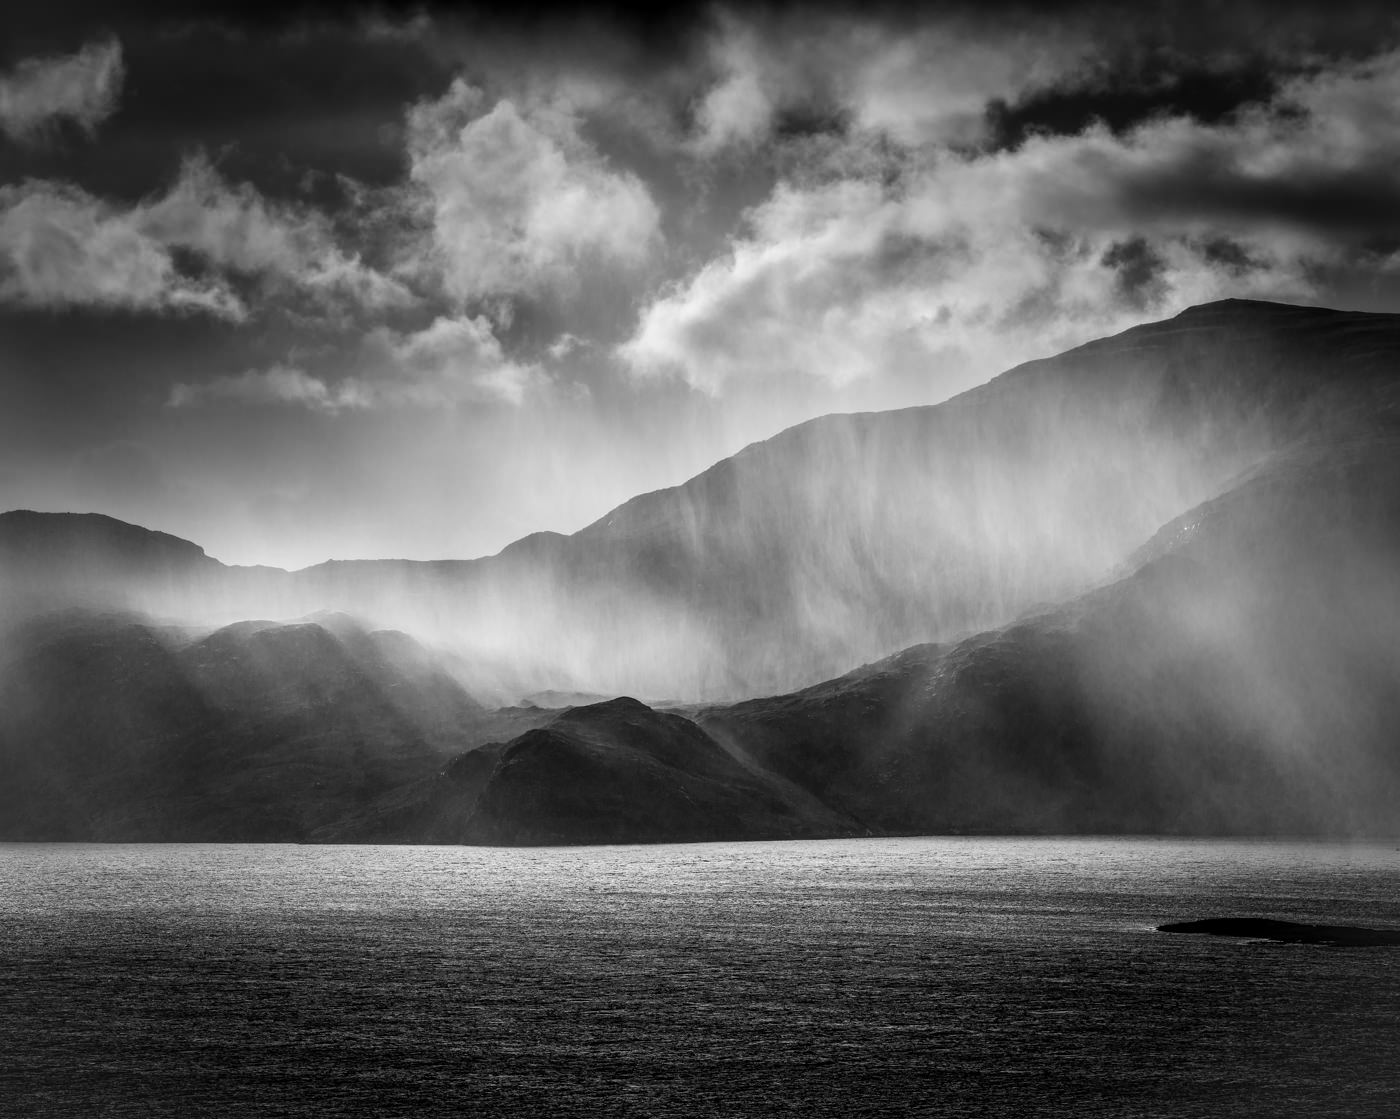 Mono Print - 2nd Place: Wet Day in Harris by Brian Clark